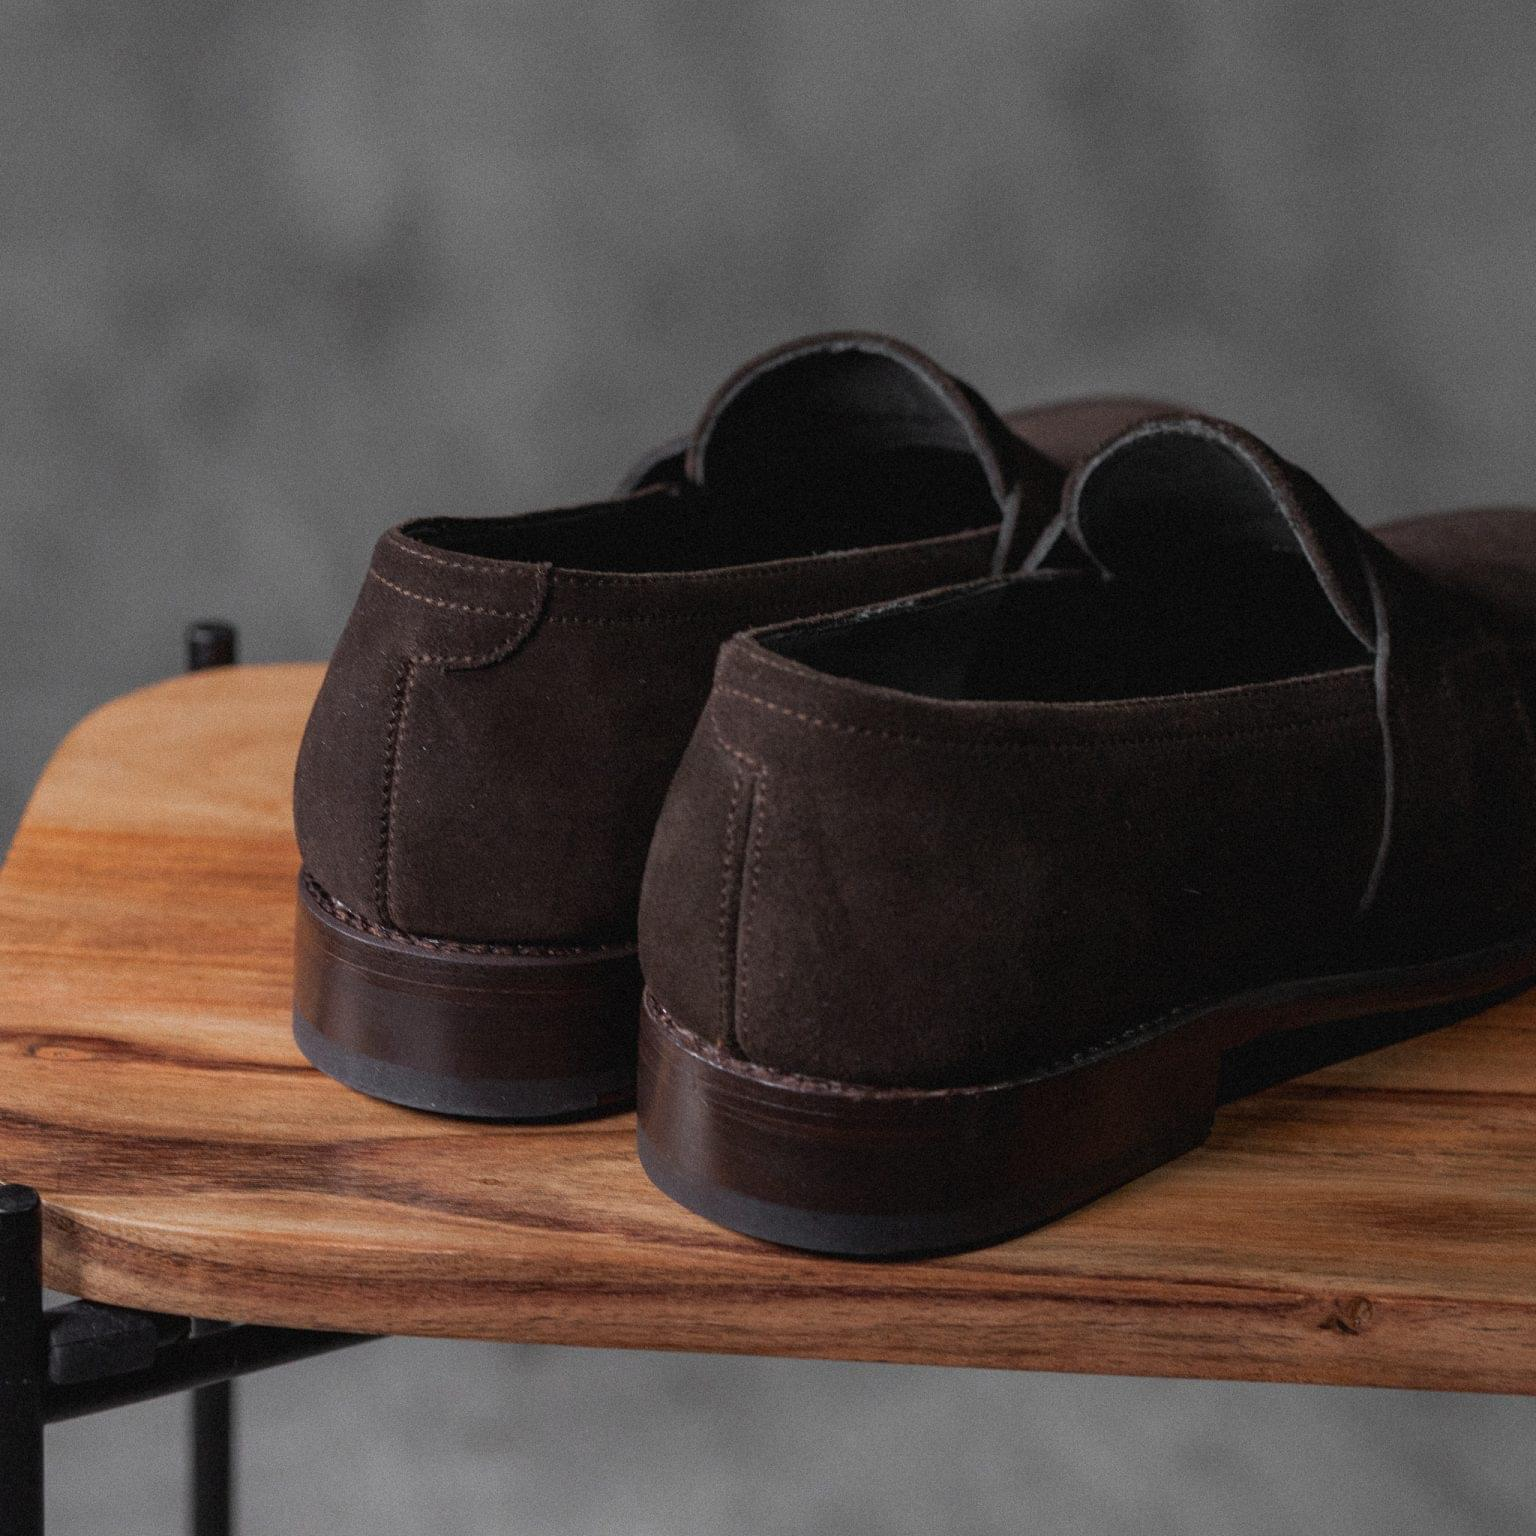 LOAFERS-MOCASINES-01-02-The-Seëlk-3